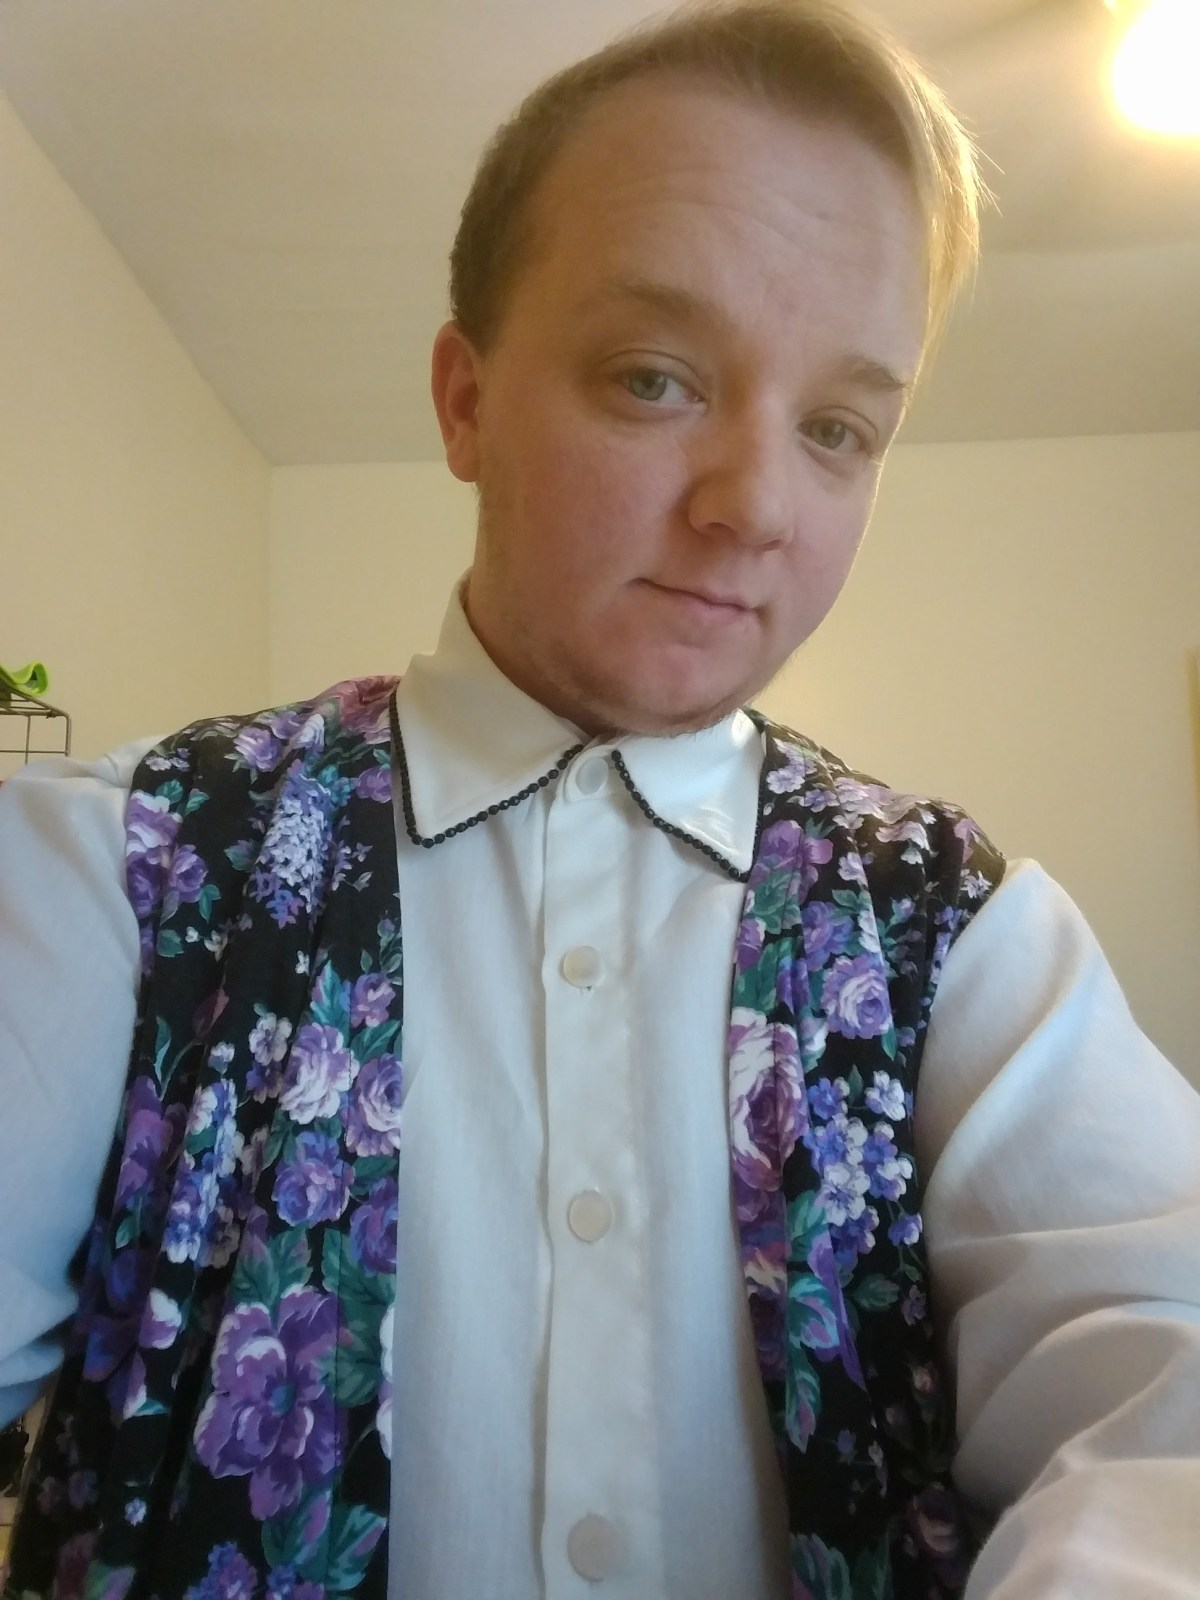 Noah in customized, dandy-esque menswear shirt